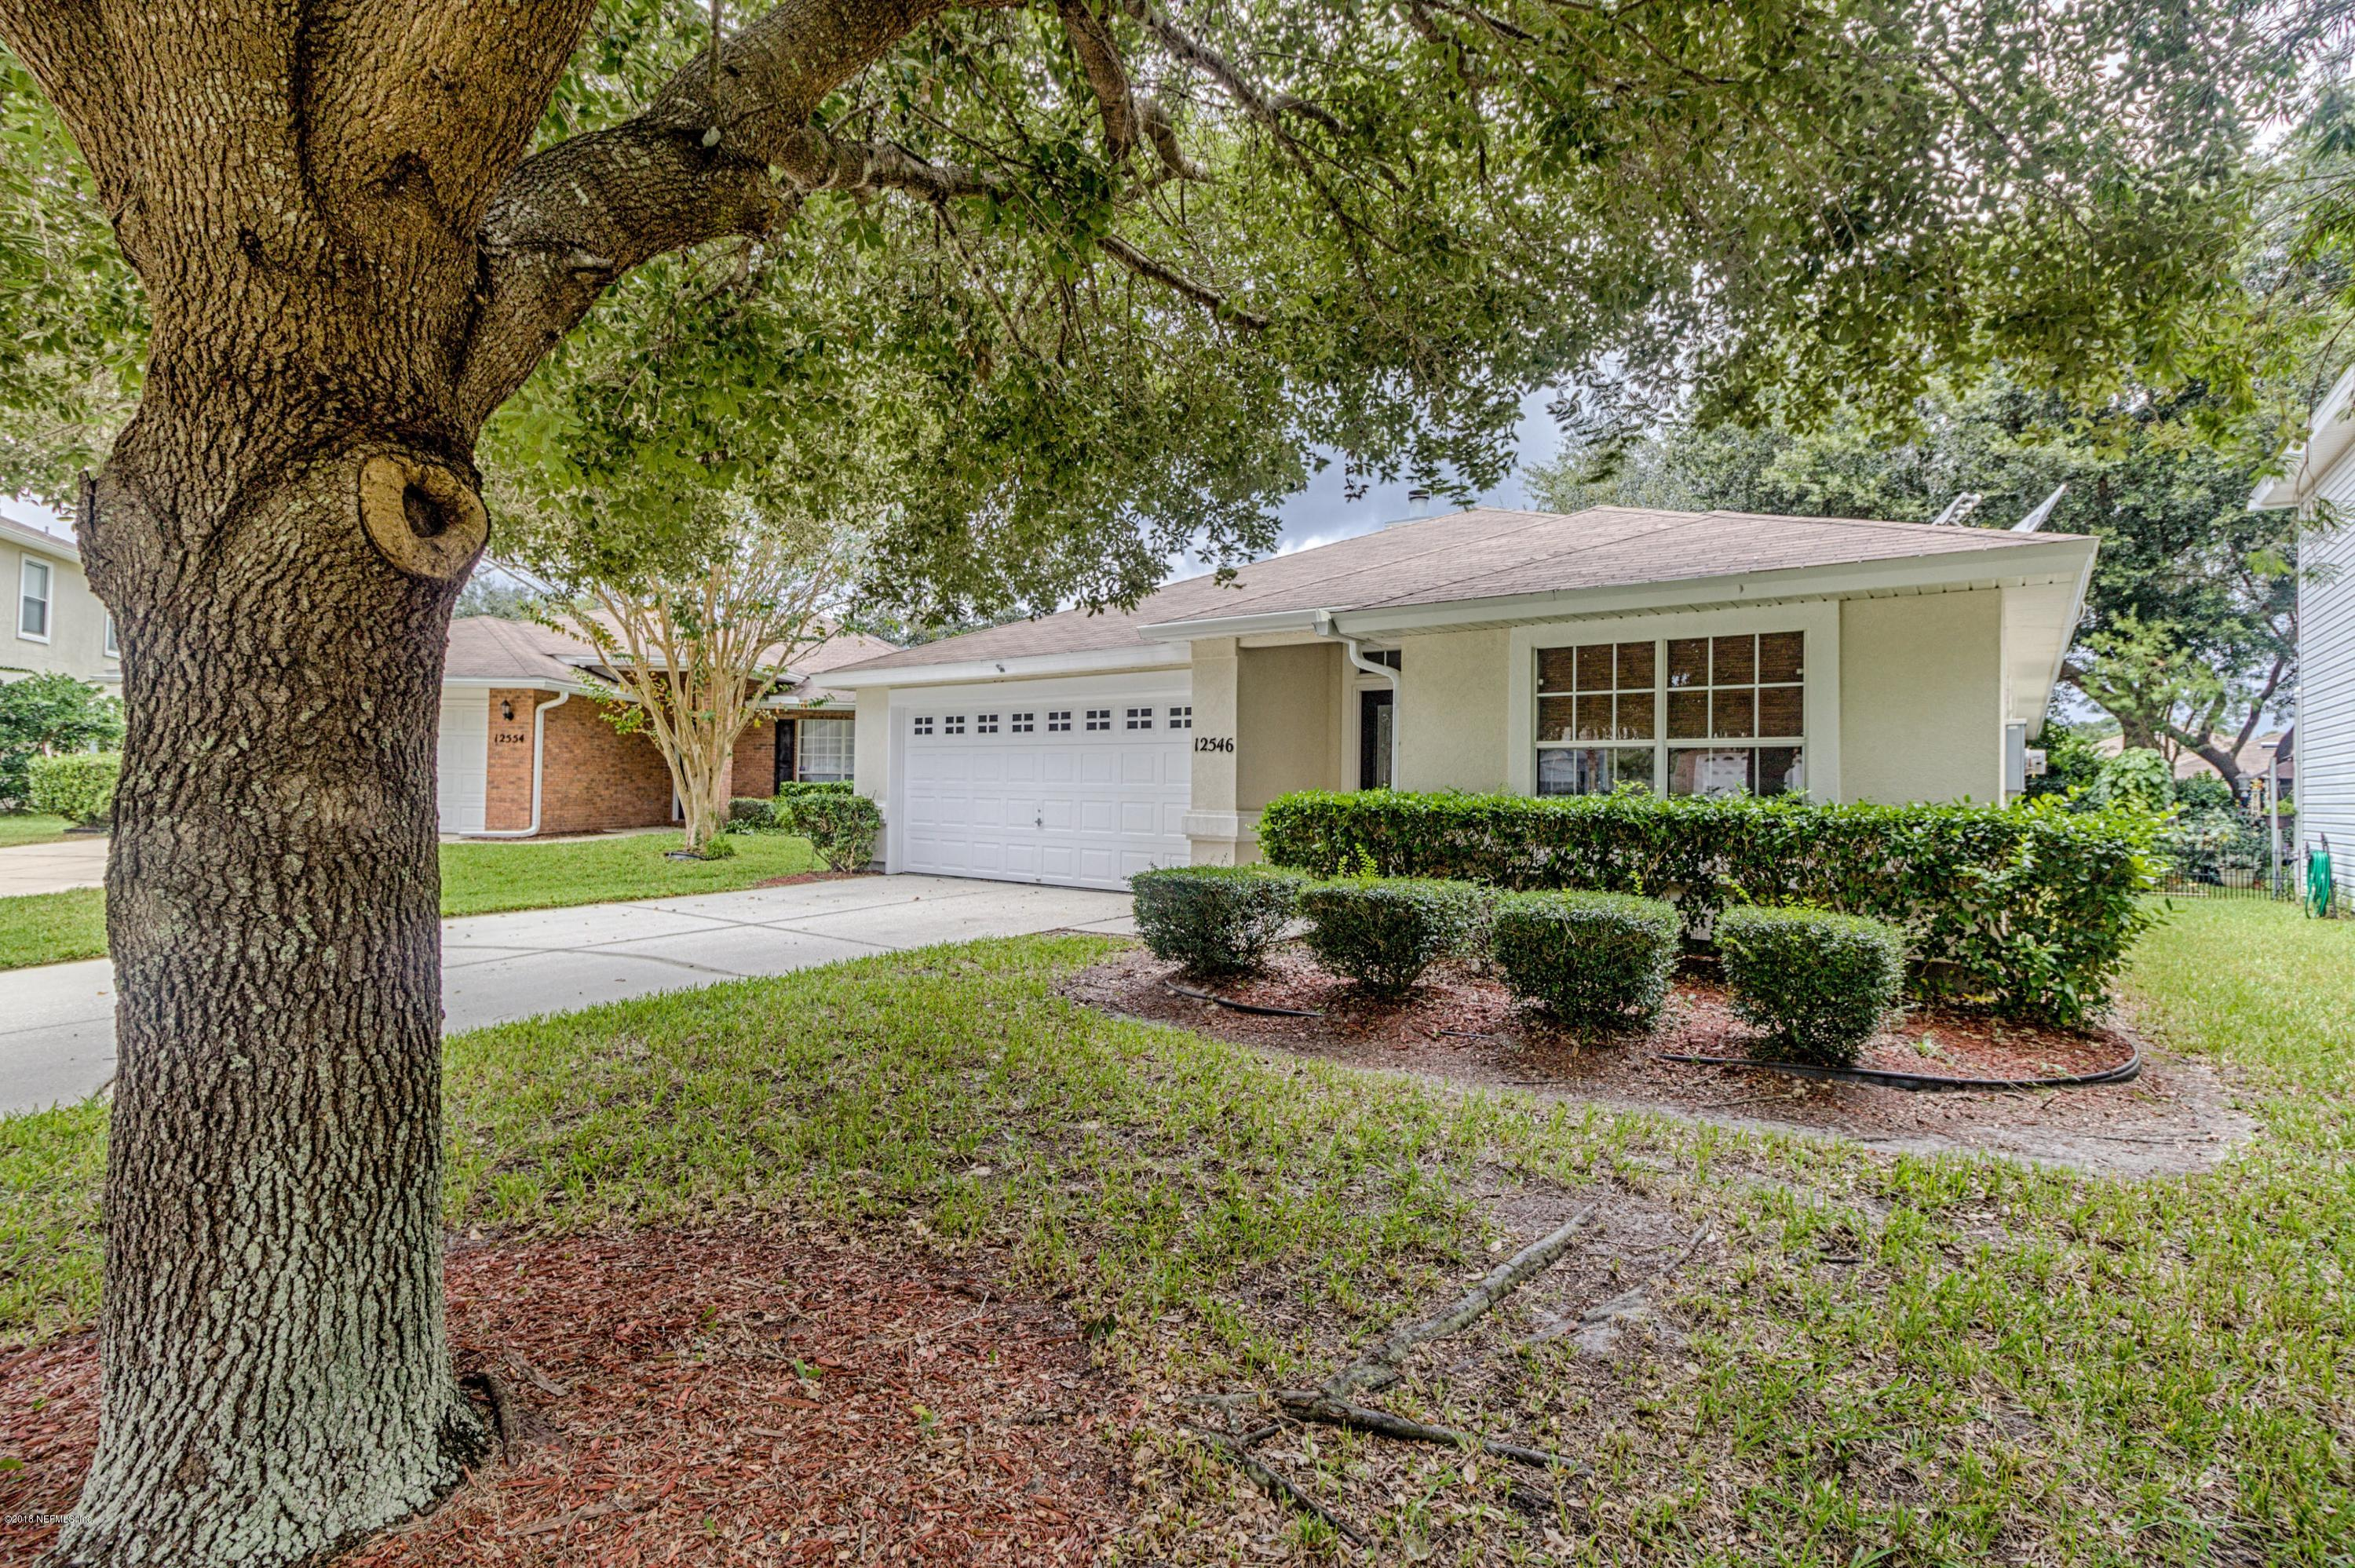 12546 WOODHOLLOW, JACKSONVILLE, FLORIDA 32258, 3 Bedrooms Bedrooms, ,2 BathroomsBathrooms,Residential - single family,For sale,WOODHOLLOW,965463